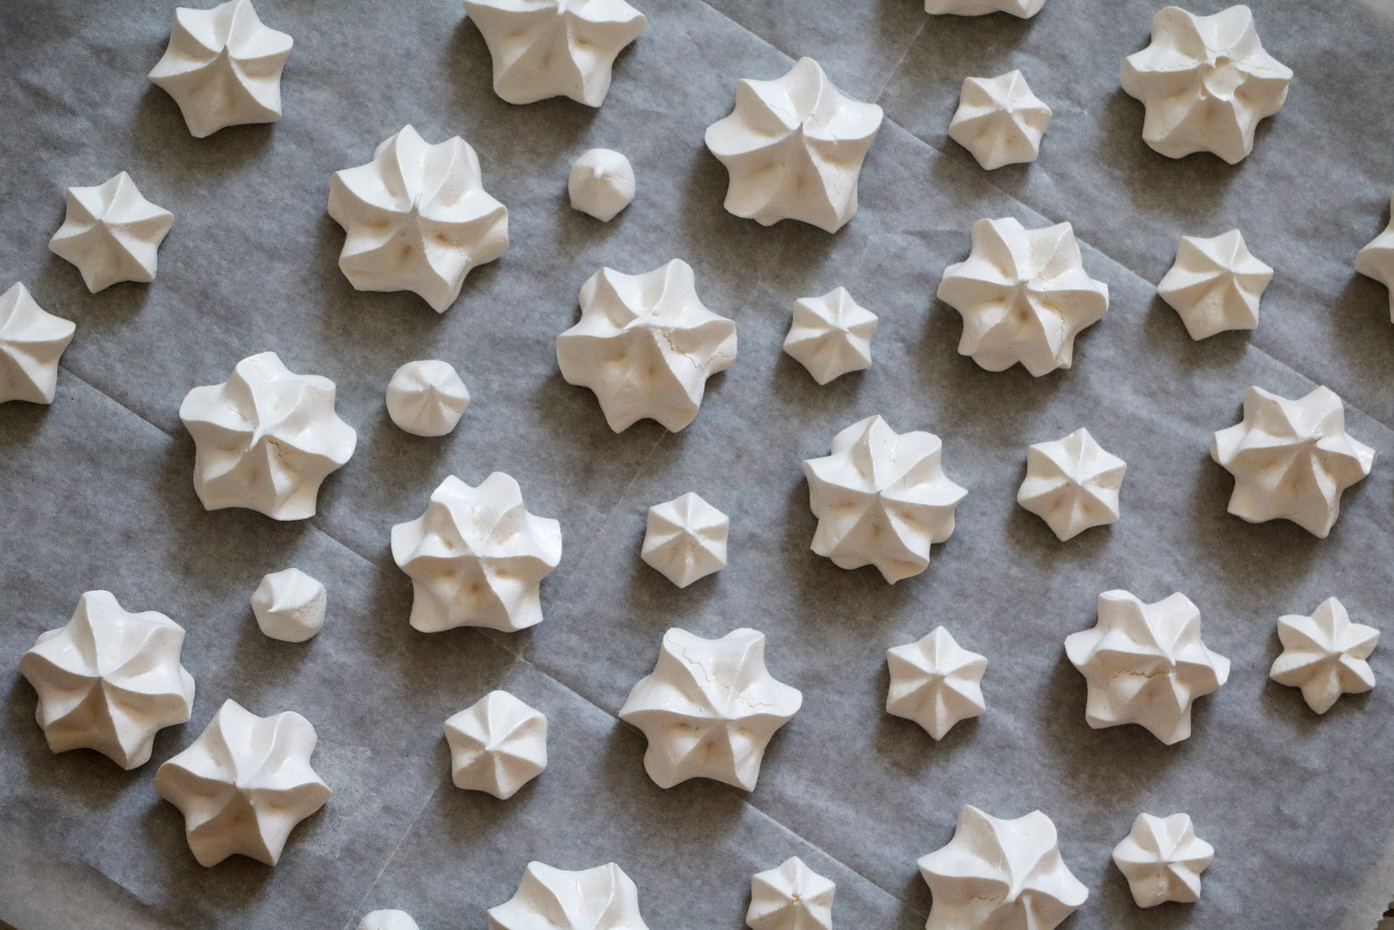 The secret of making great meringue